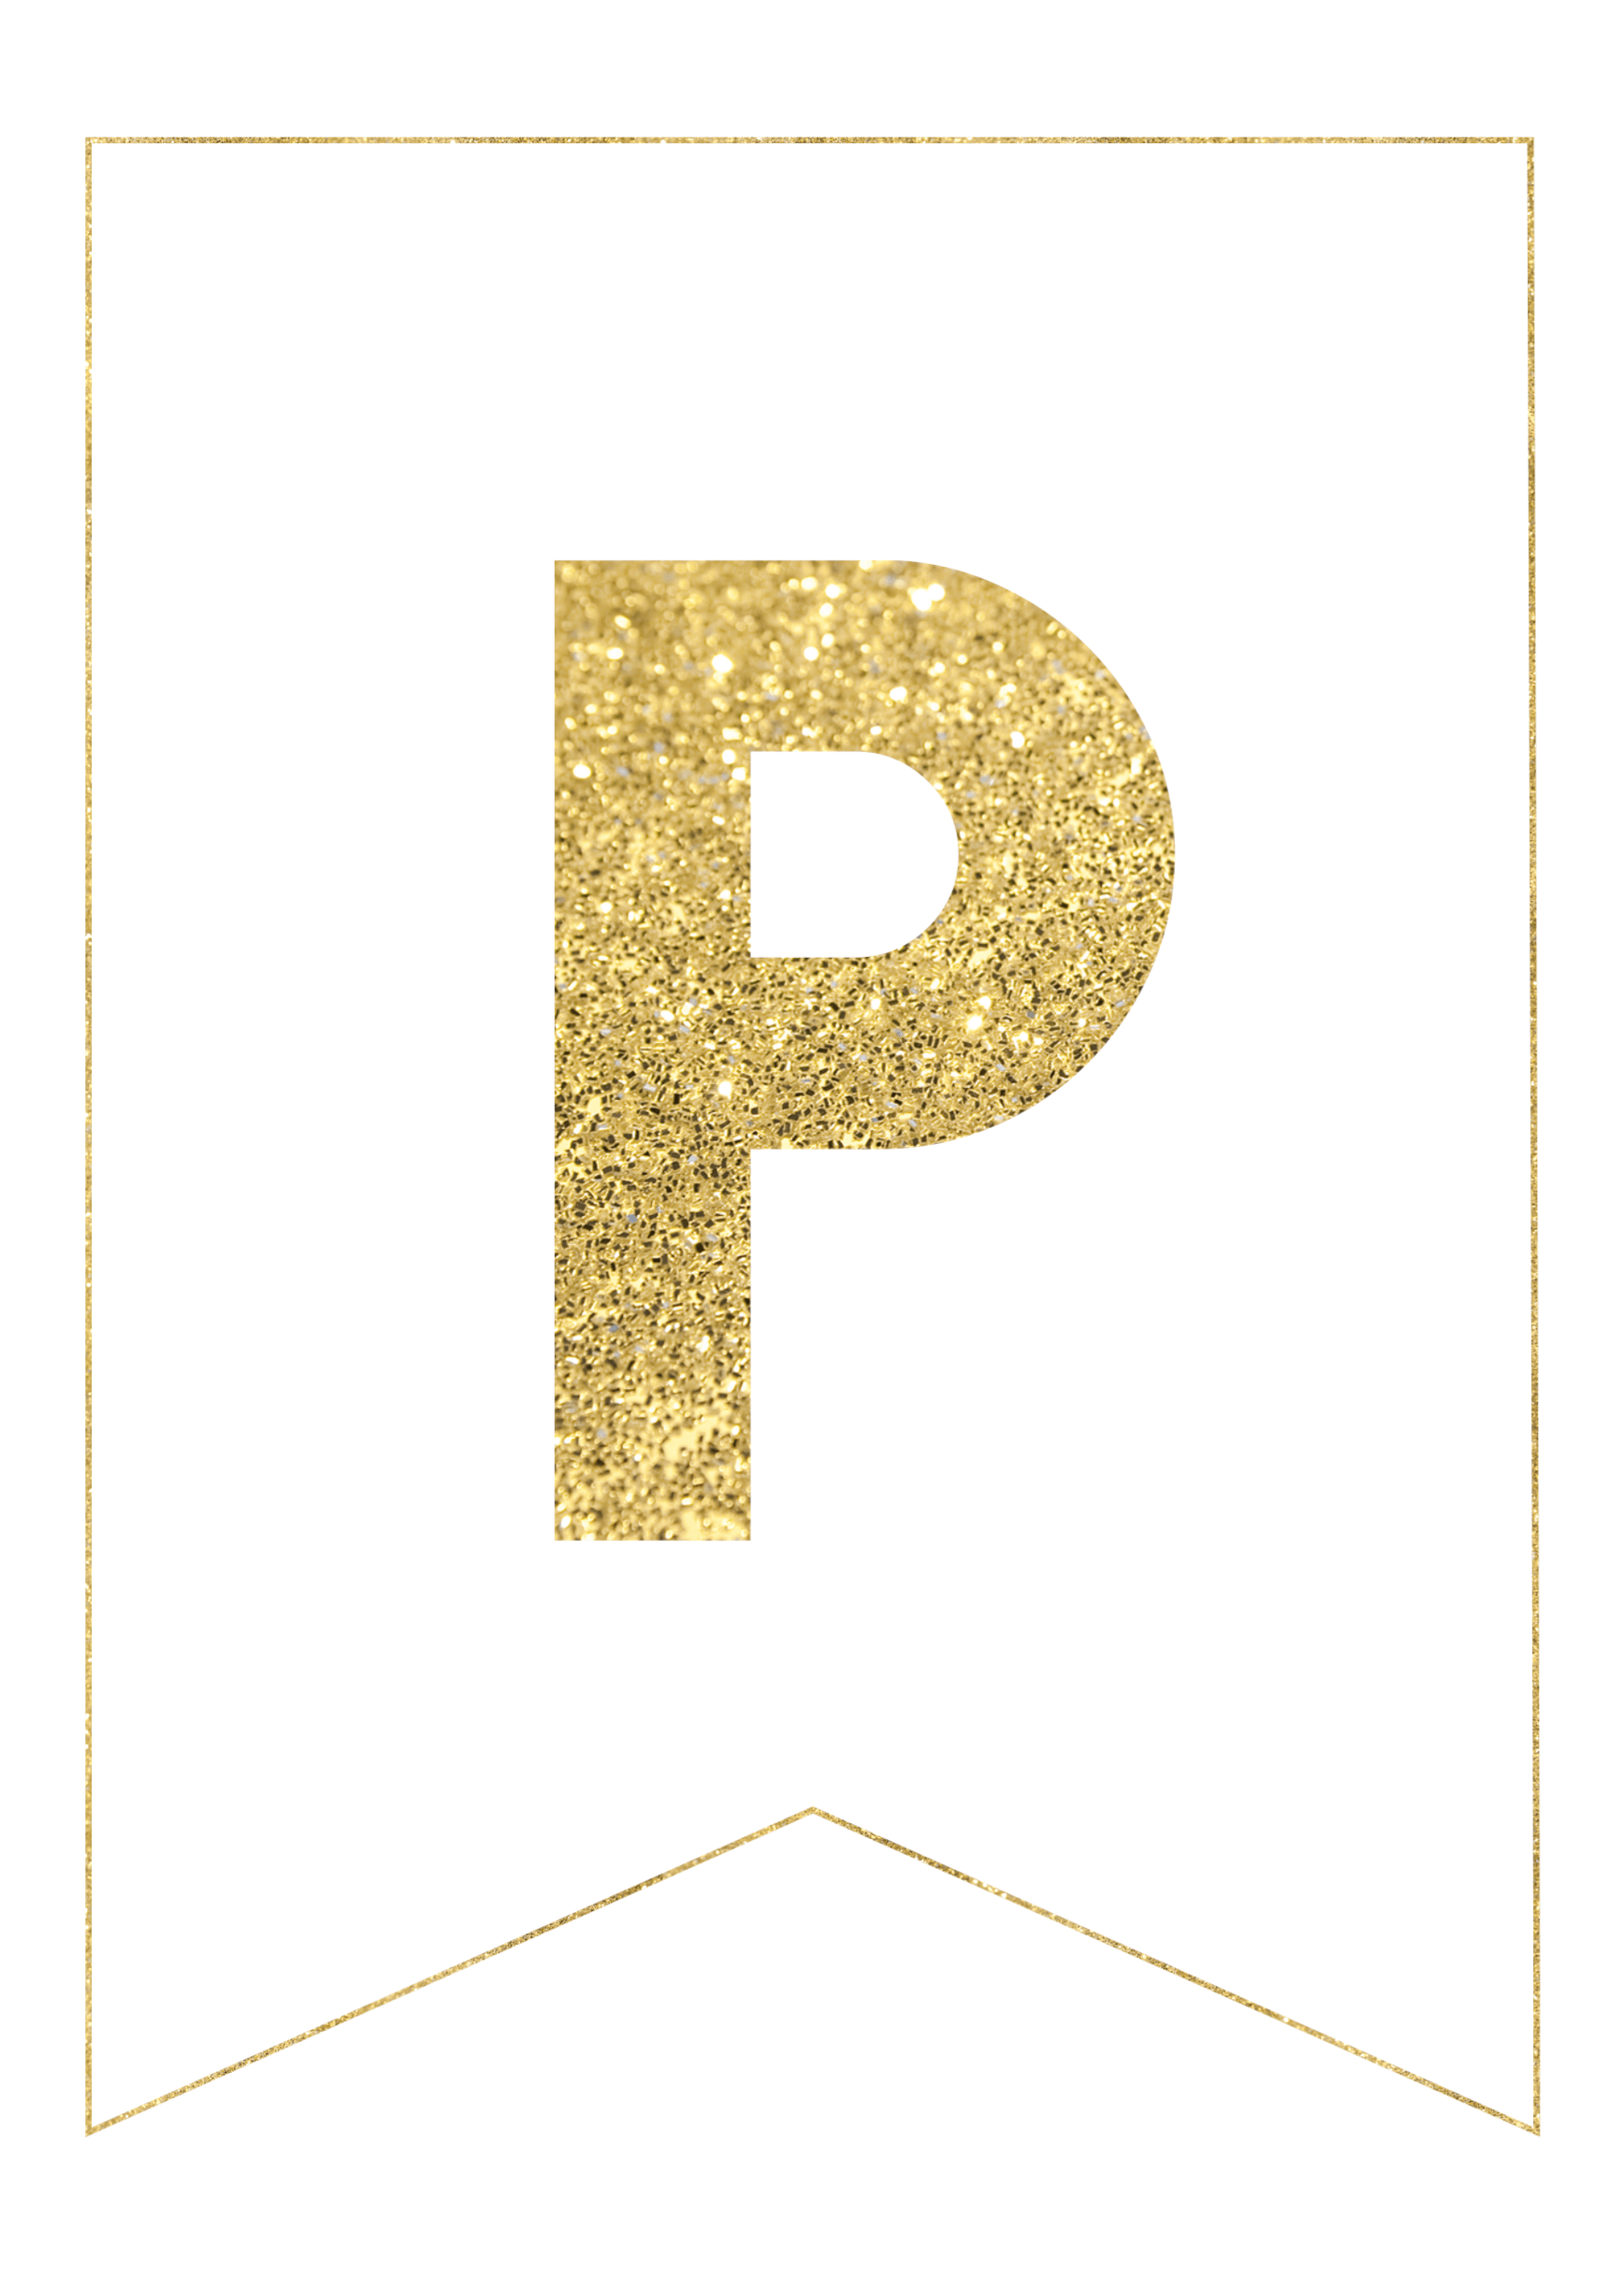 gold glitter letters png